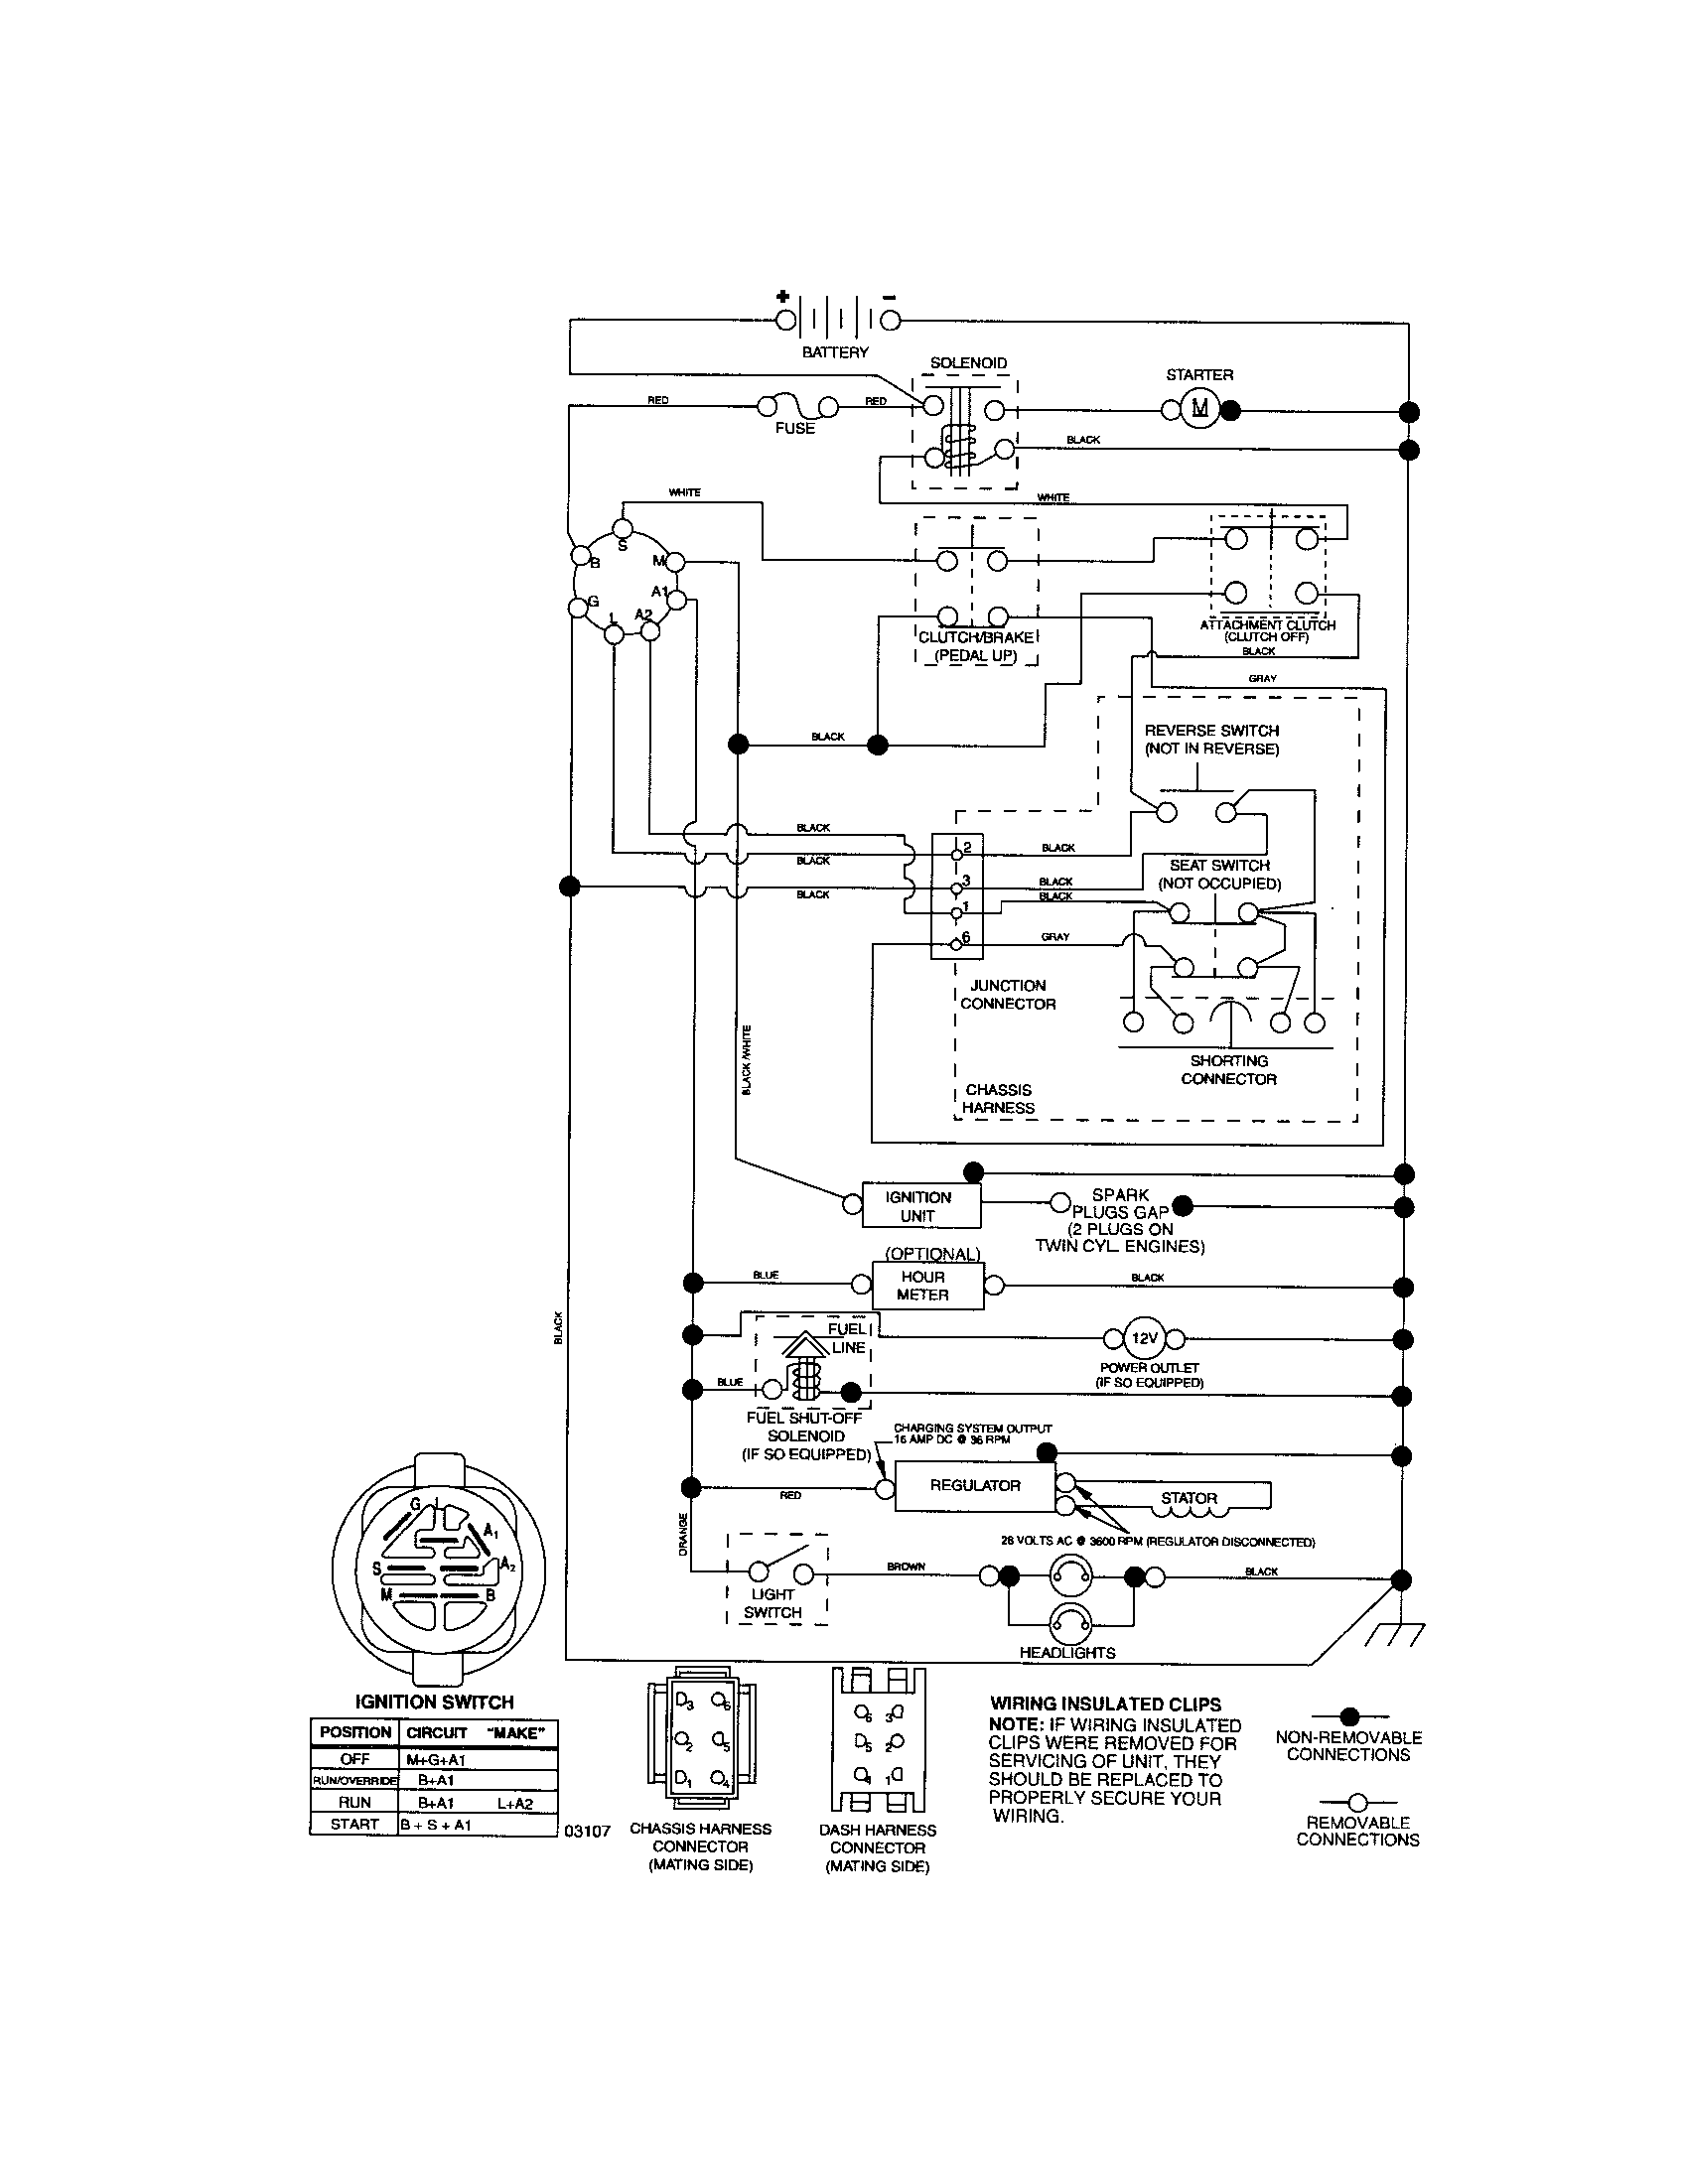 6af5f1447fd13c8443376822ddc1e105 riding lawn mower wiring diagram gravely mower wiring diagram on wiring diagram for servalite l50ku switch